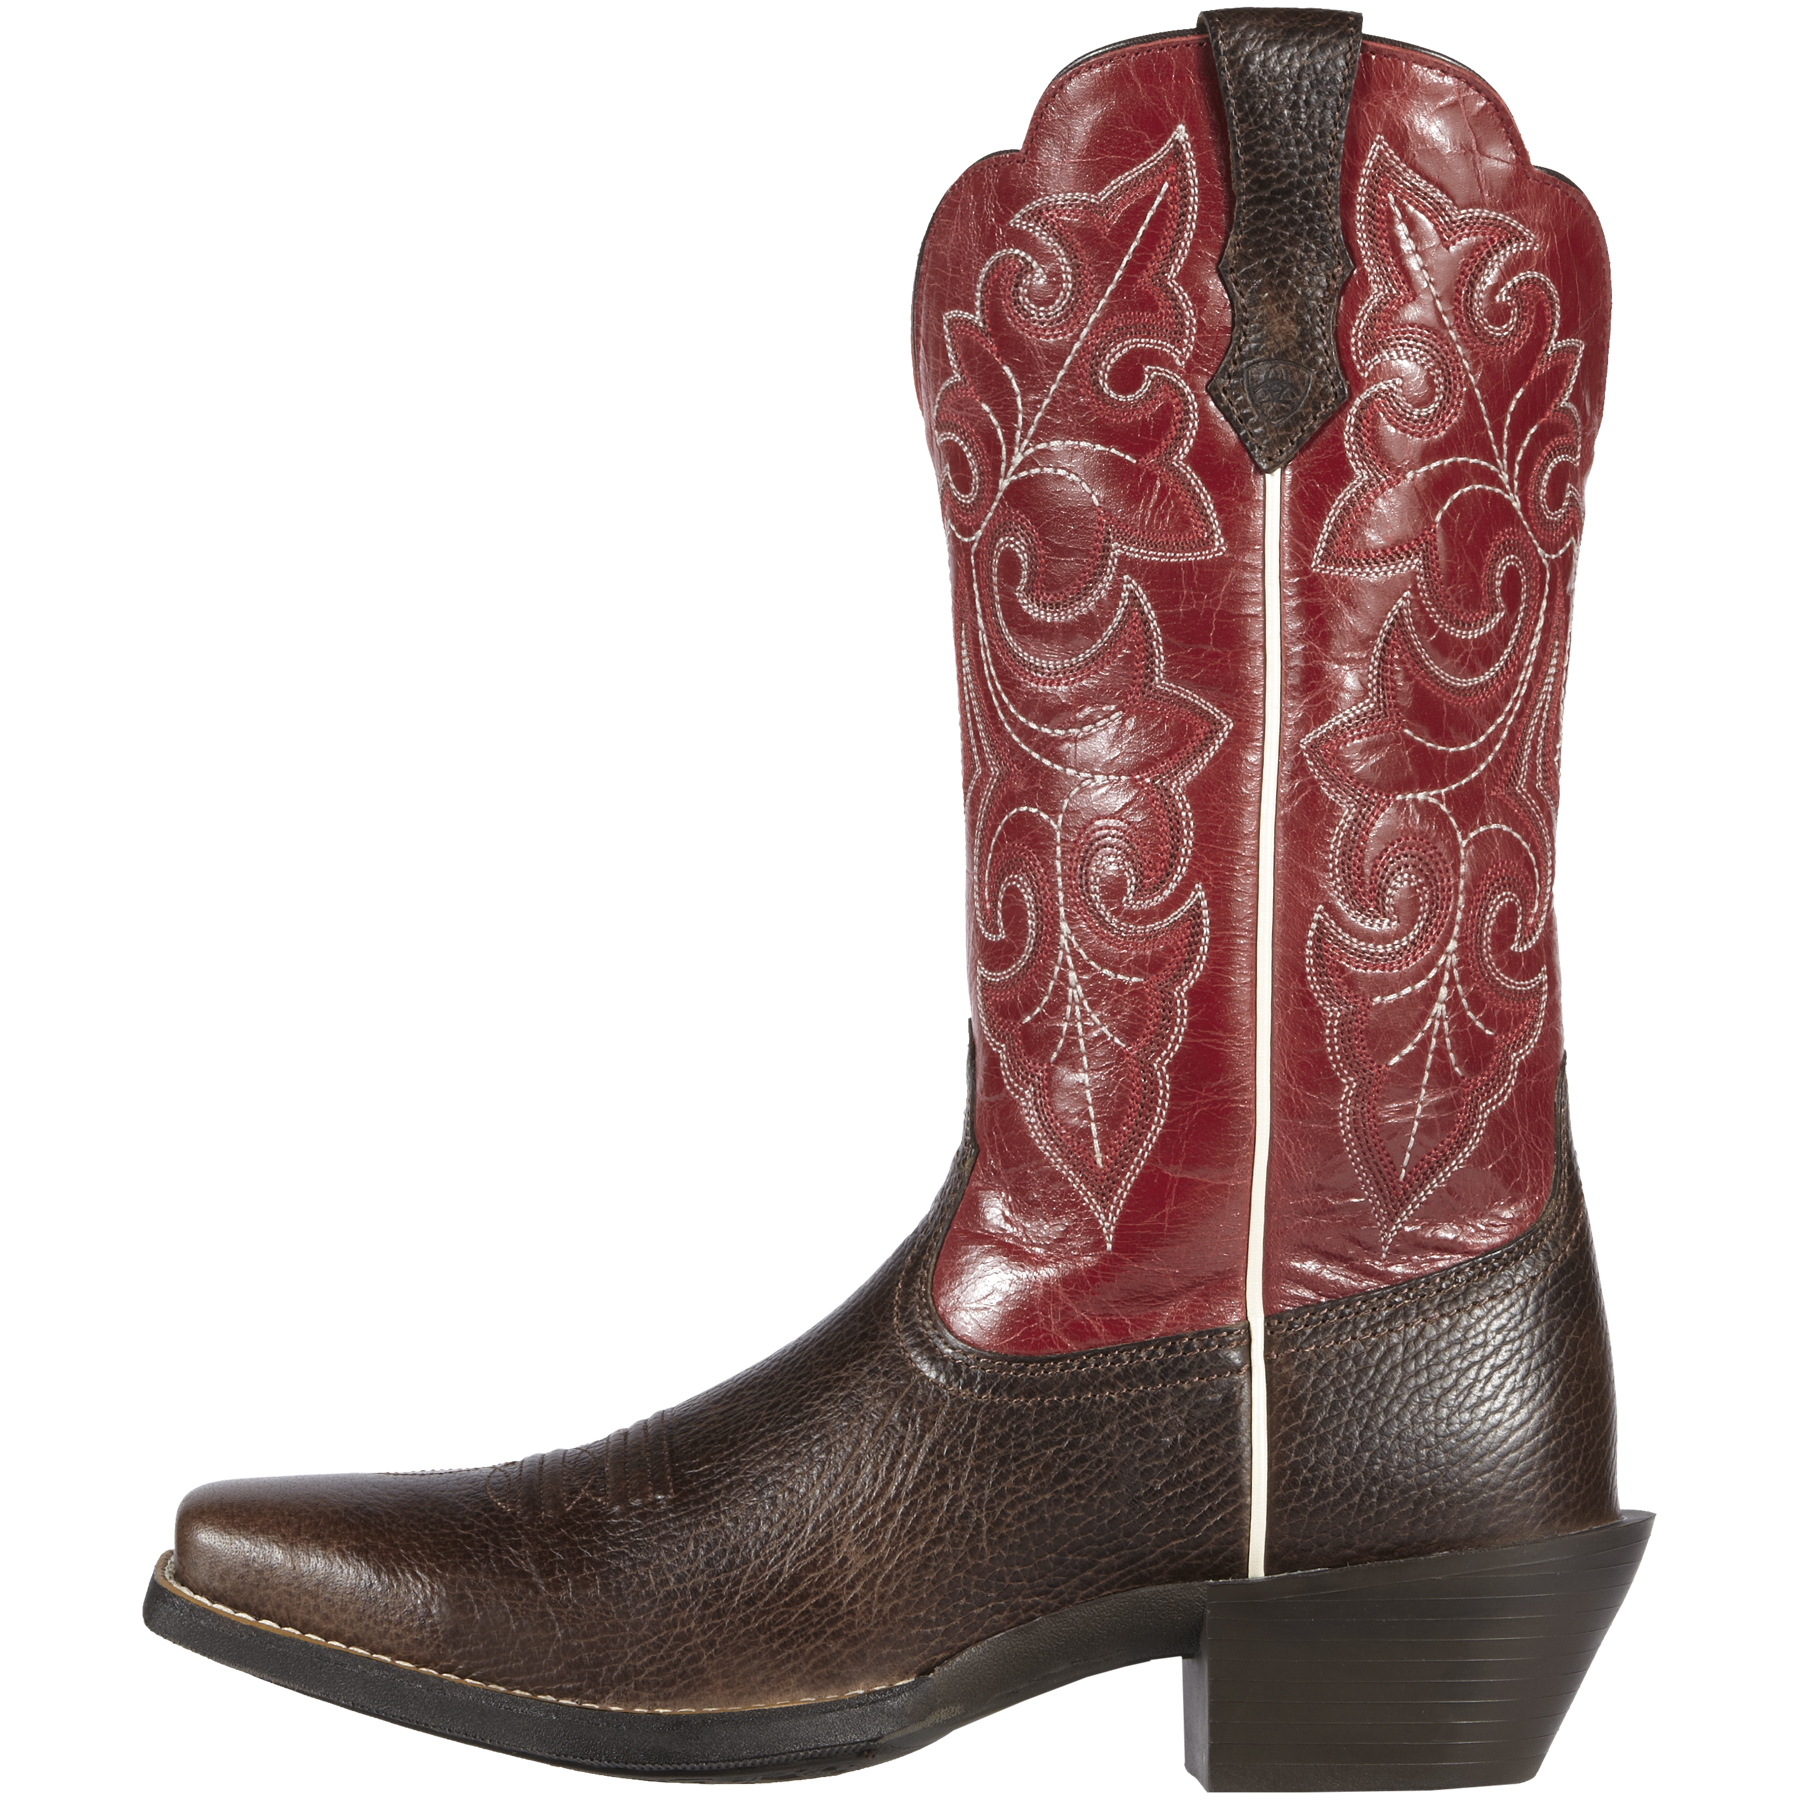 Save ariat boots clearance to get e-mail alerts and updates on your eBay Feed. + Items in search results. Ariat Heritage Contour Dress Zip Tall Boot CLEARANCE. Brand New. Ariat Devon 3 Zip Boot - Black Size 1 BLACK FRIDAY CLEARANCE See more like this. Ariat Terrain II Half Chaps Distressed Brown- CLEARANCE ONLY XSM Left! Brand New.